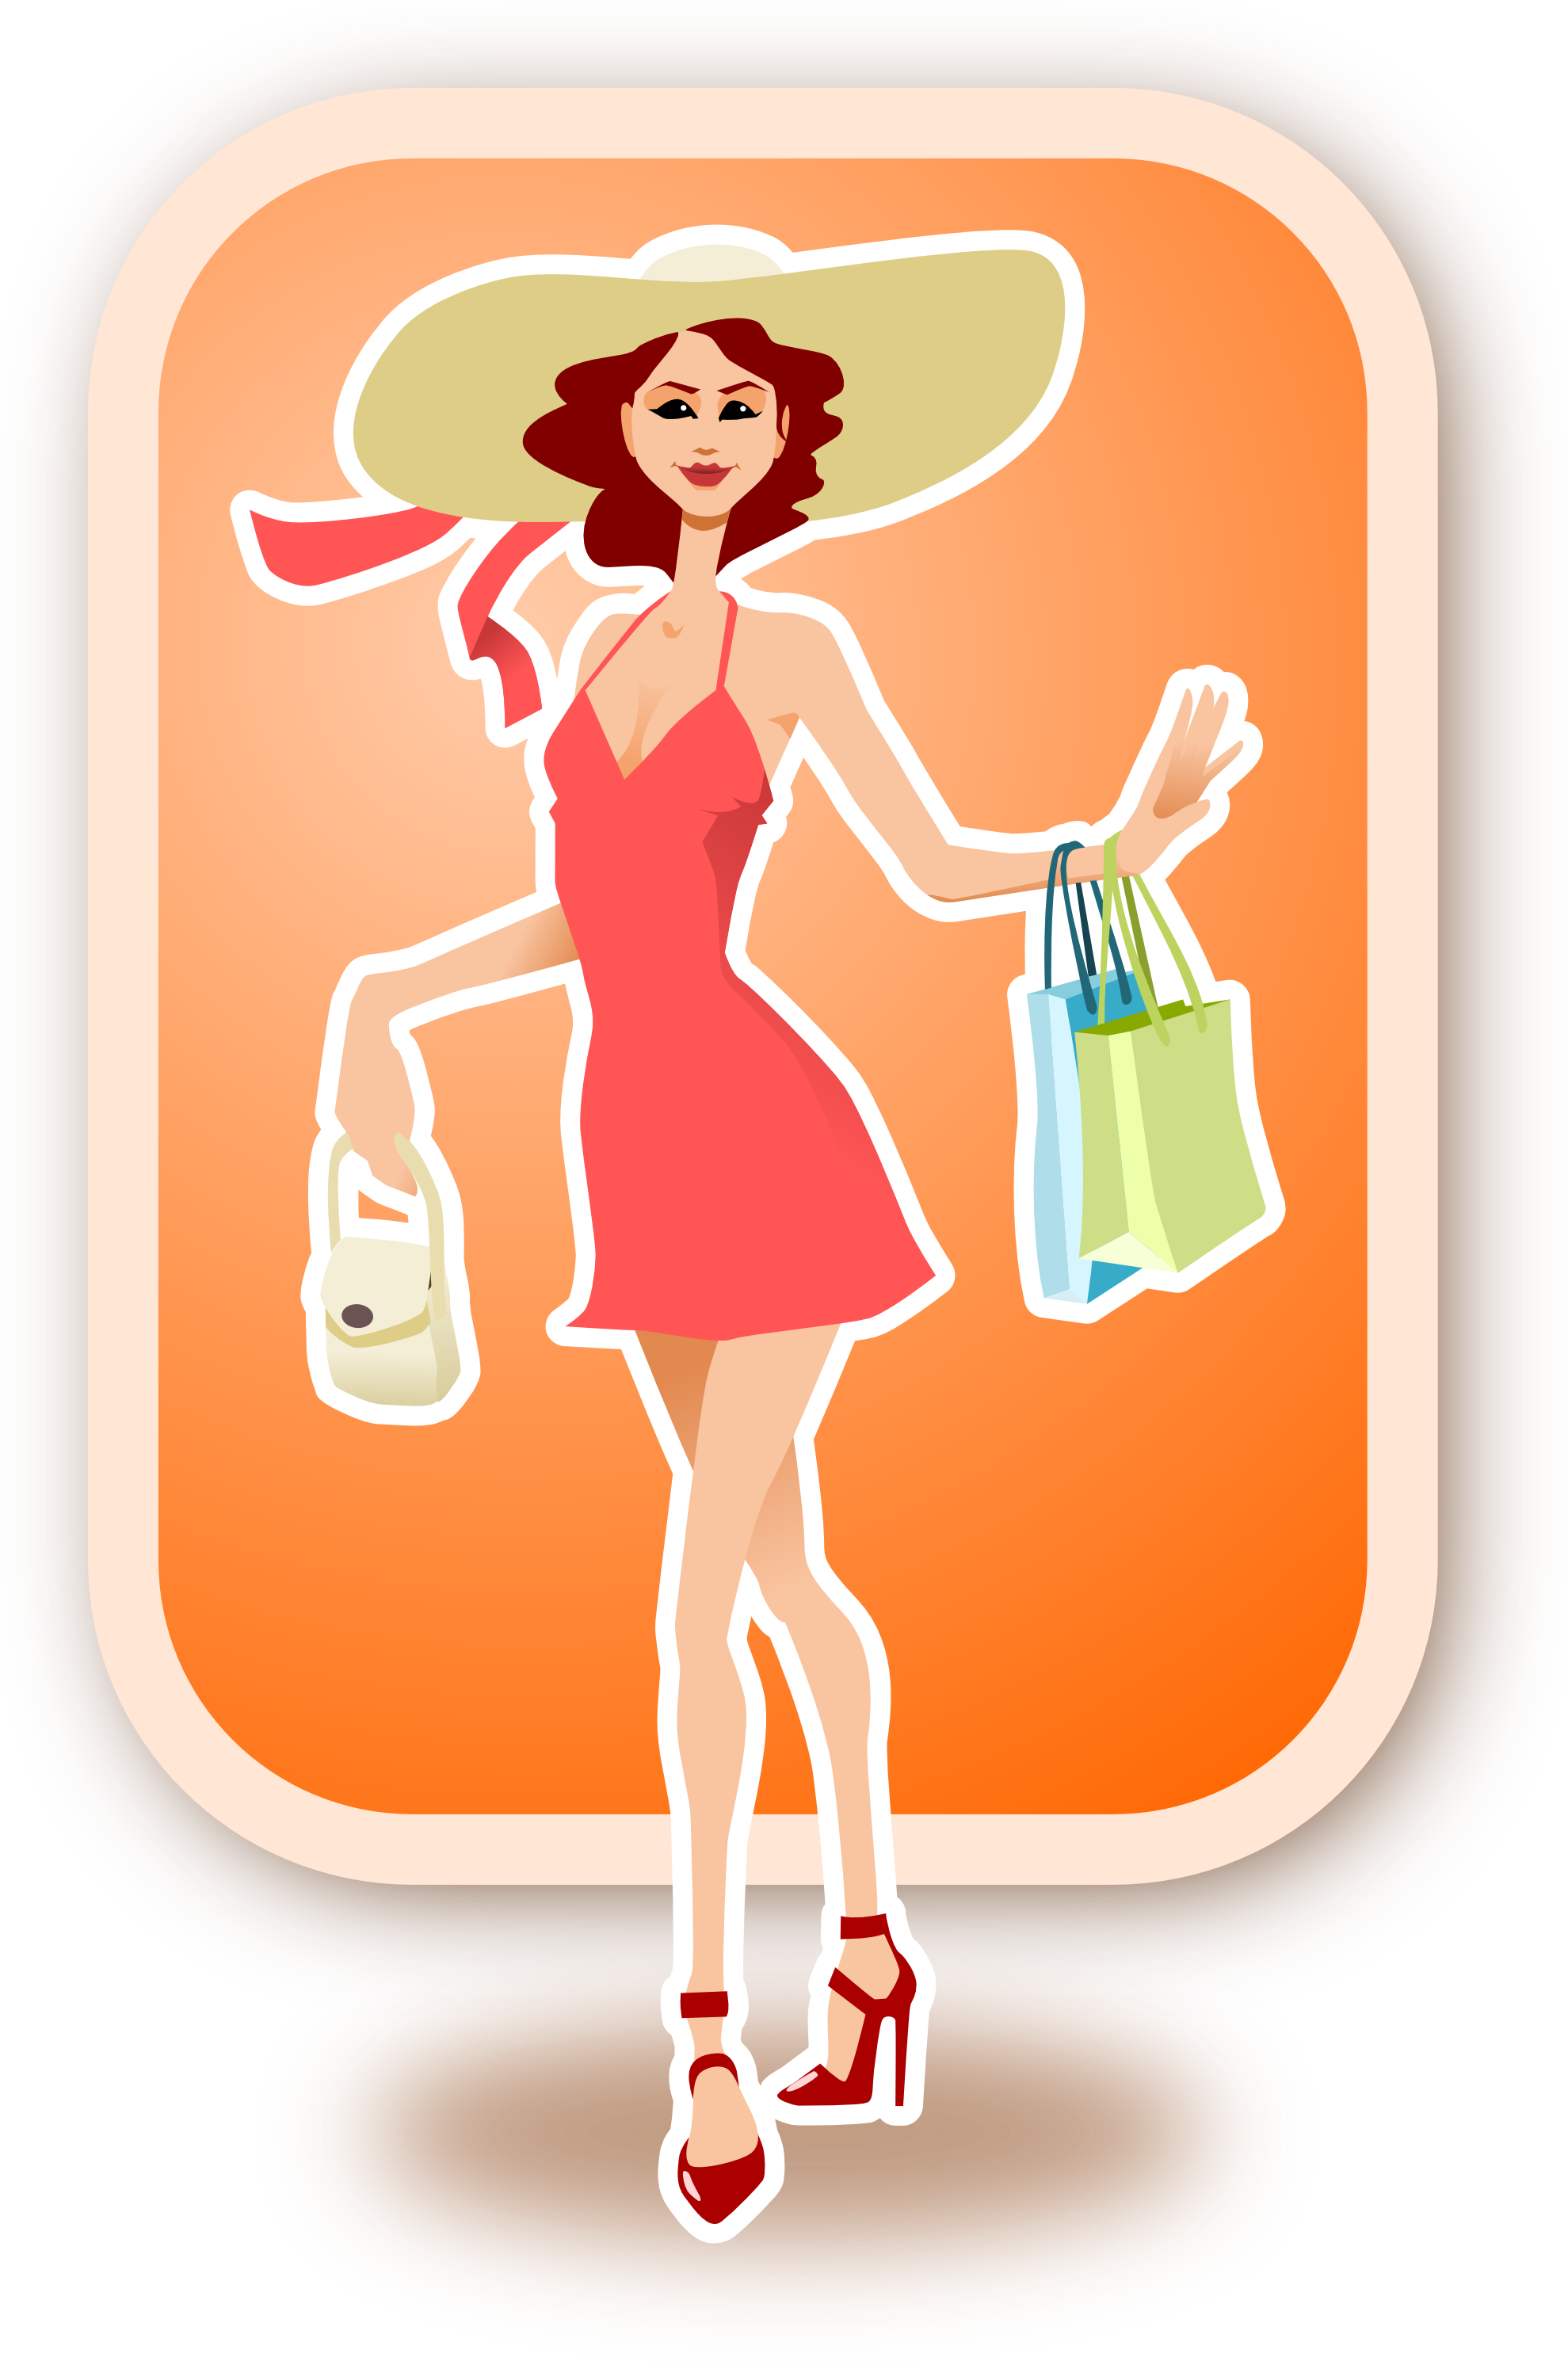 woman shopping clipart clipart suggest african american woman shopping clipart black woman shopping clipart